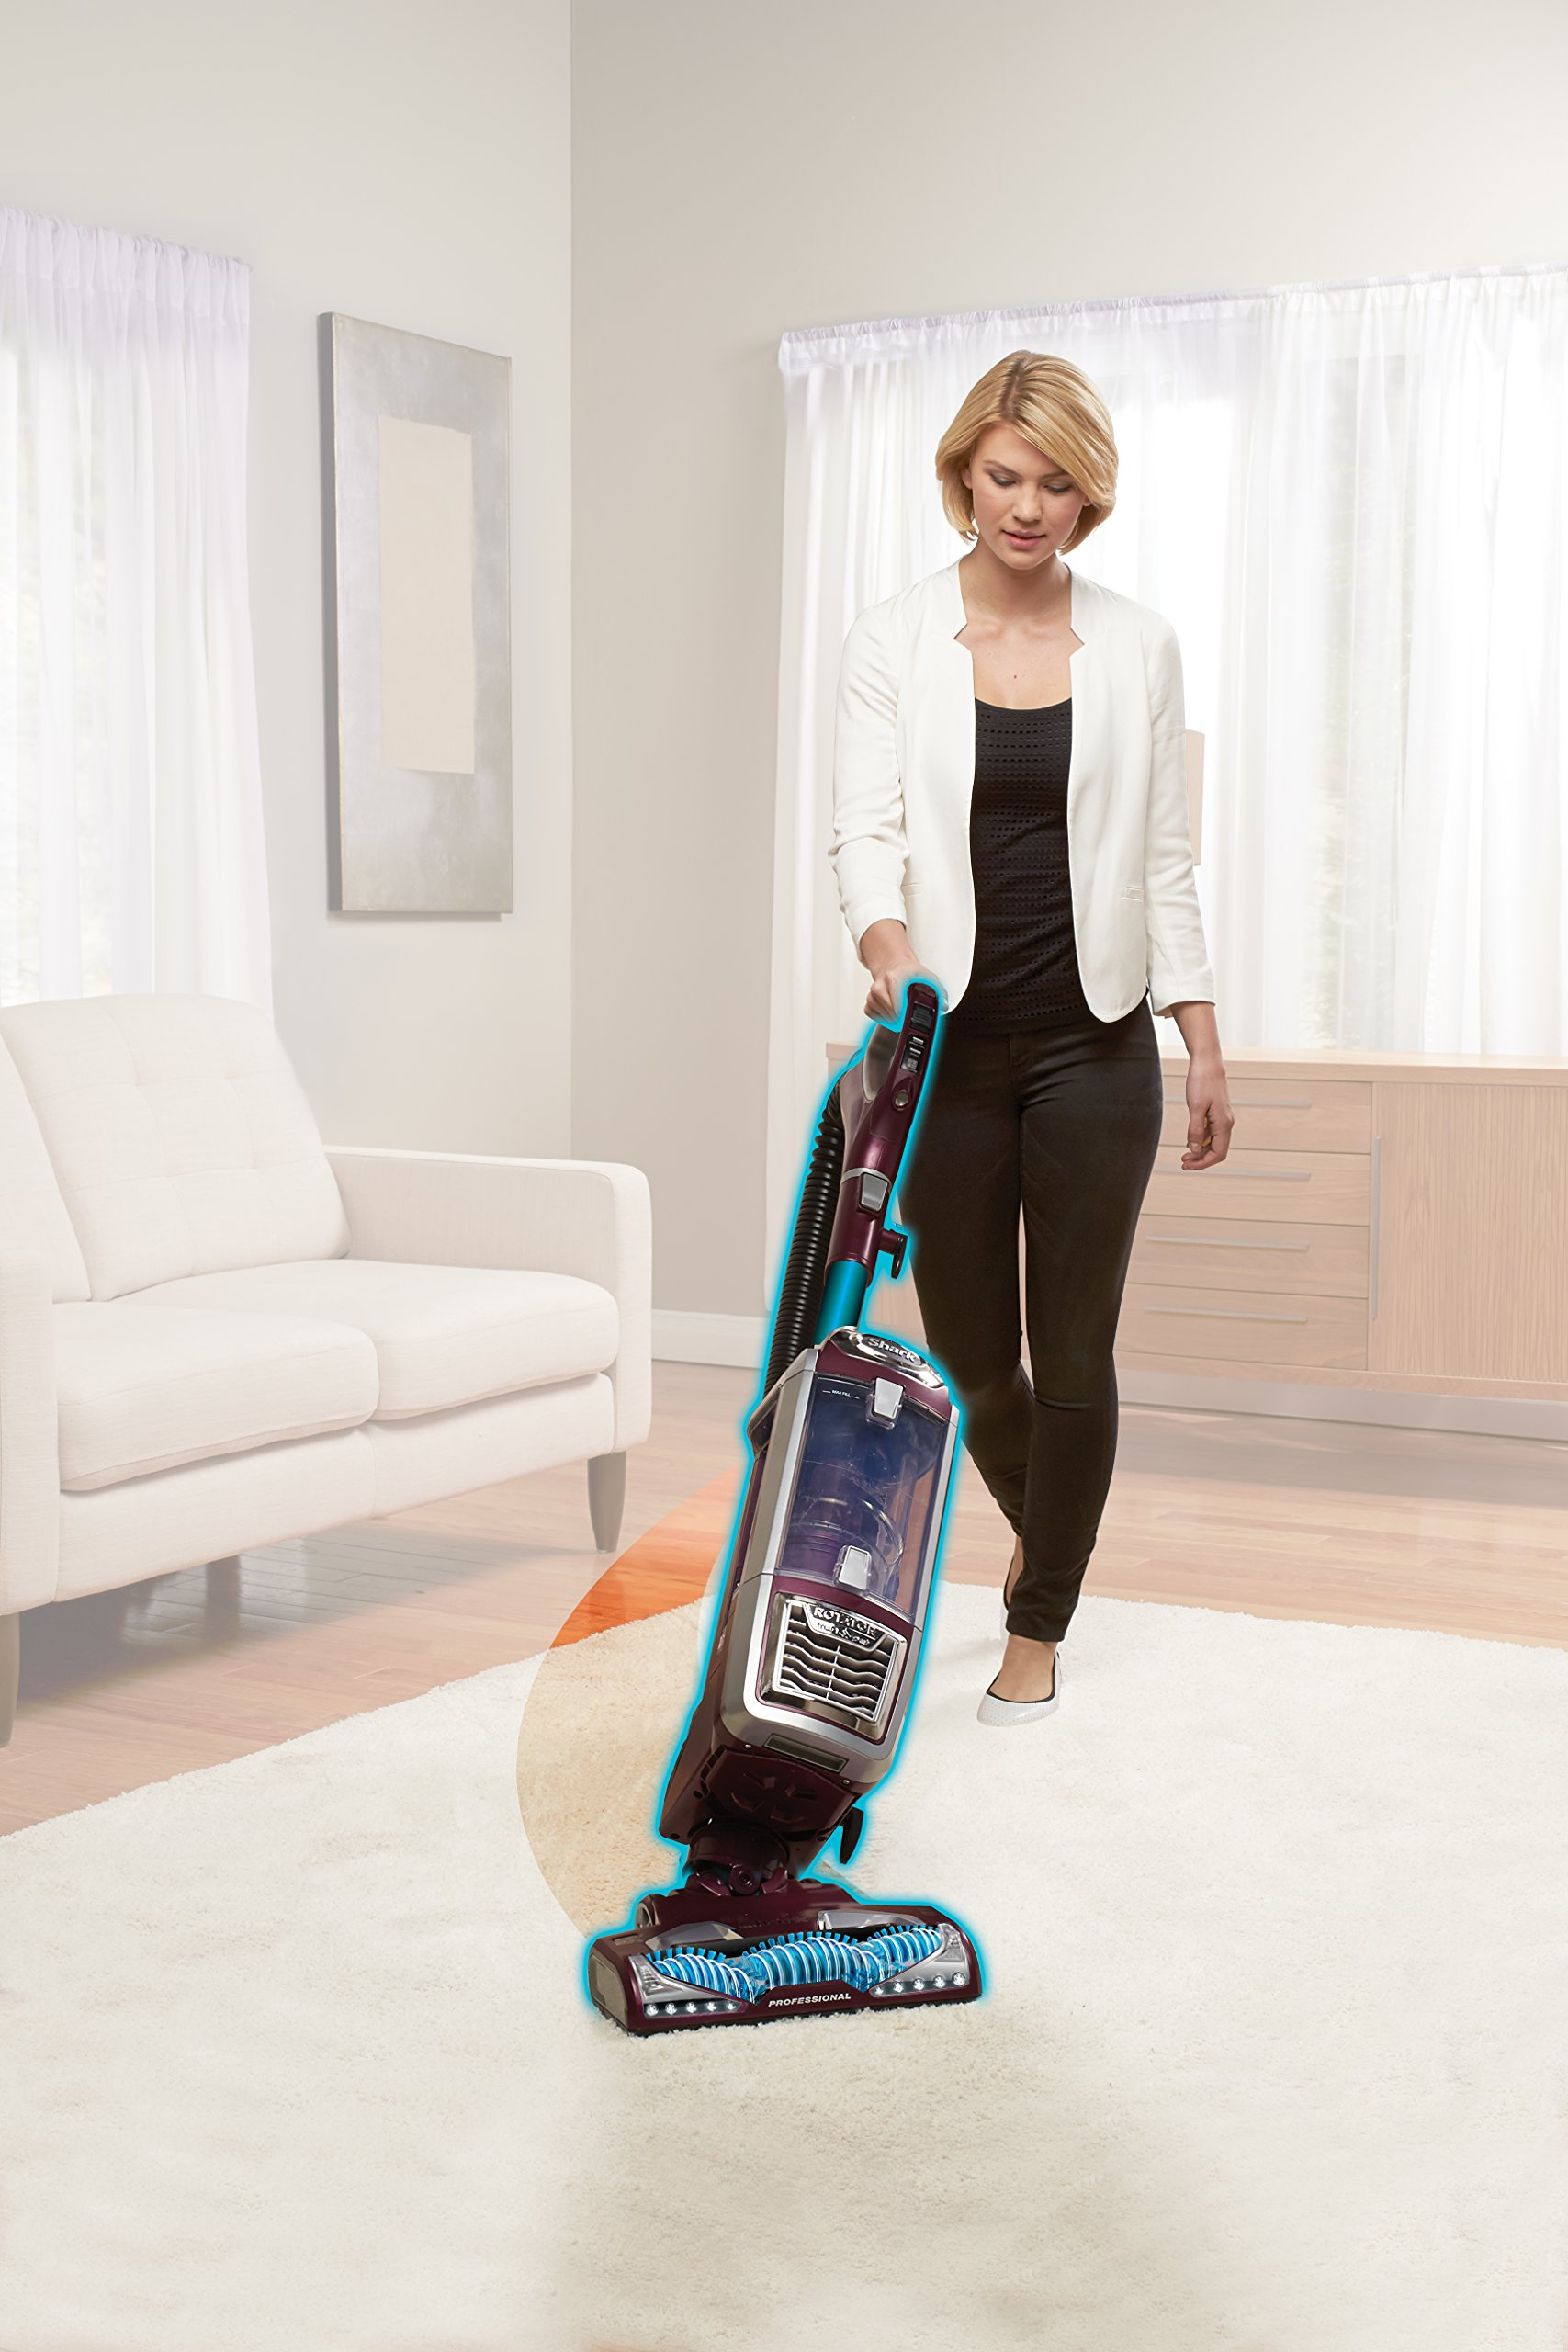 Powered lift away motorized brush in lift away deep clean with extreme under furniture reach